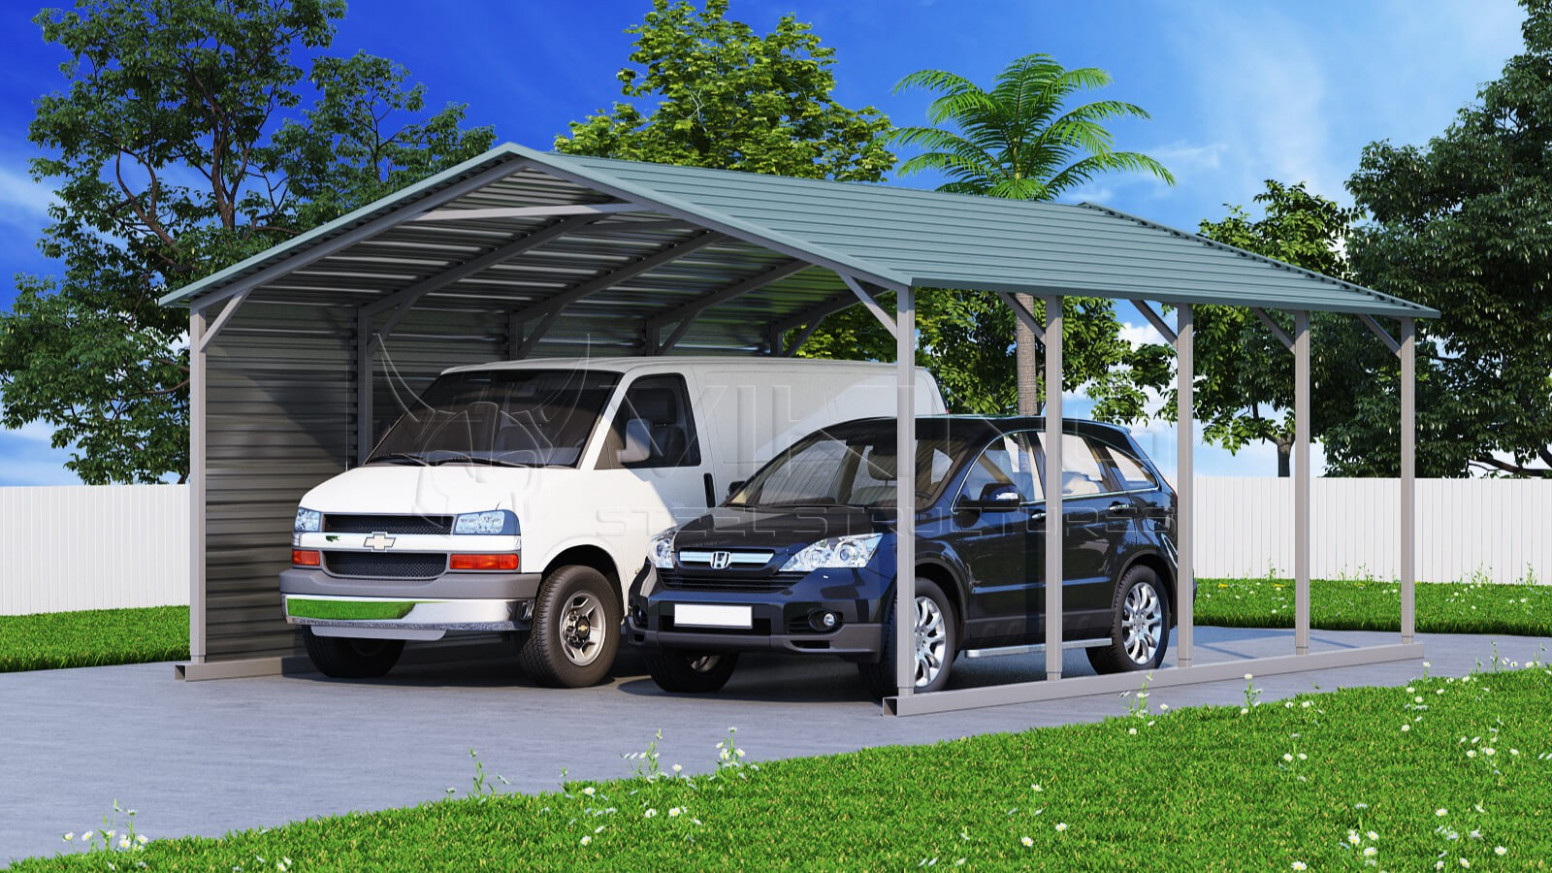 Metal Carport for Sale Near Me: How to Buy Carport